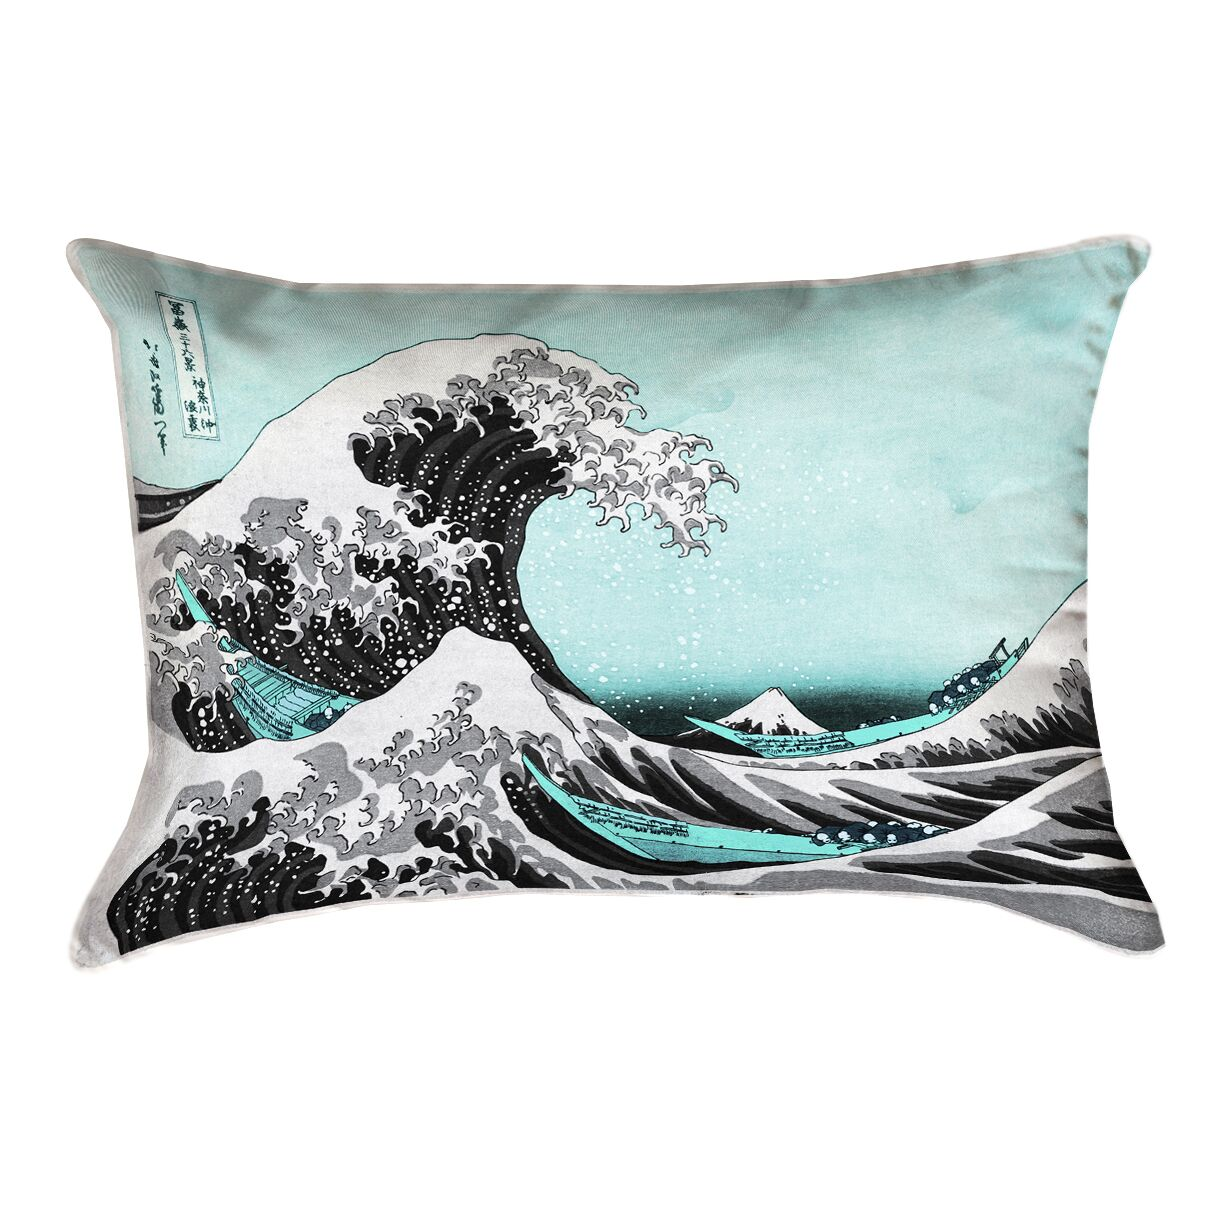 Raritan The Great Wave Leather Pillow Cover Color: Teal